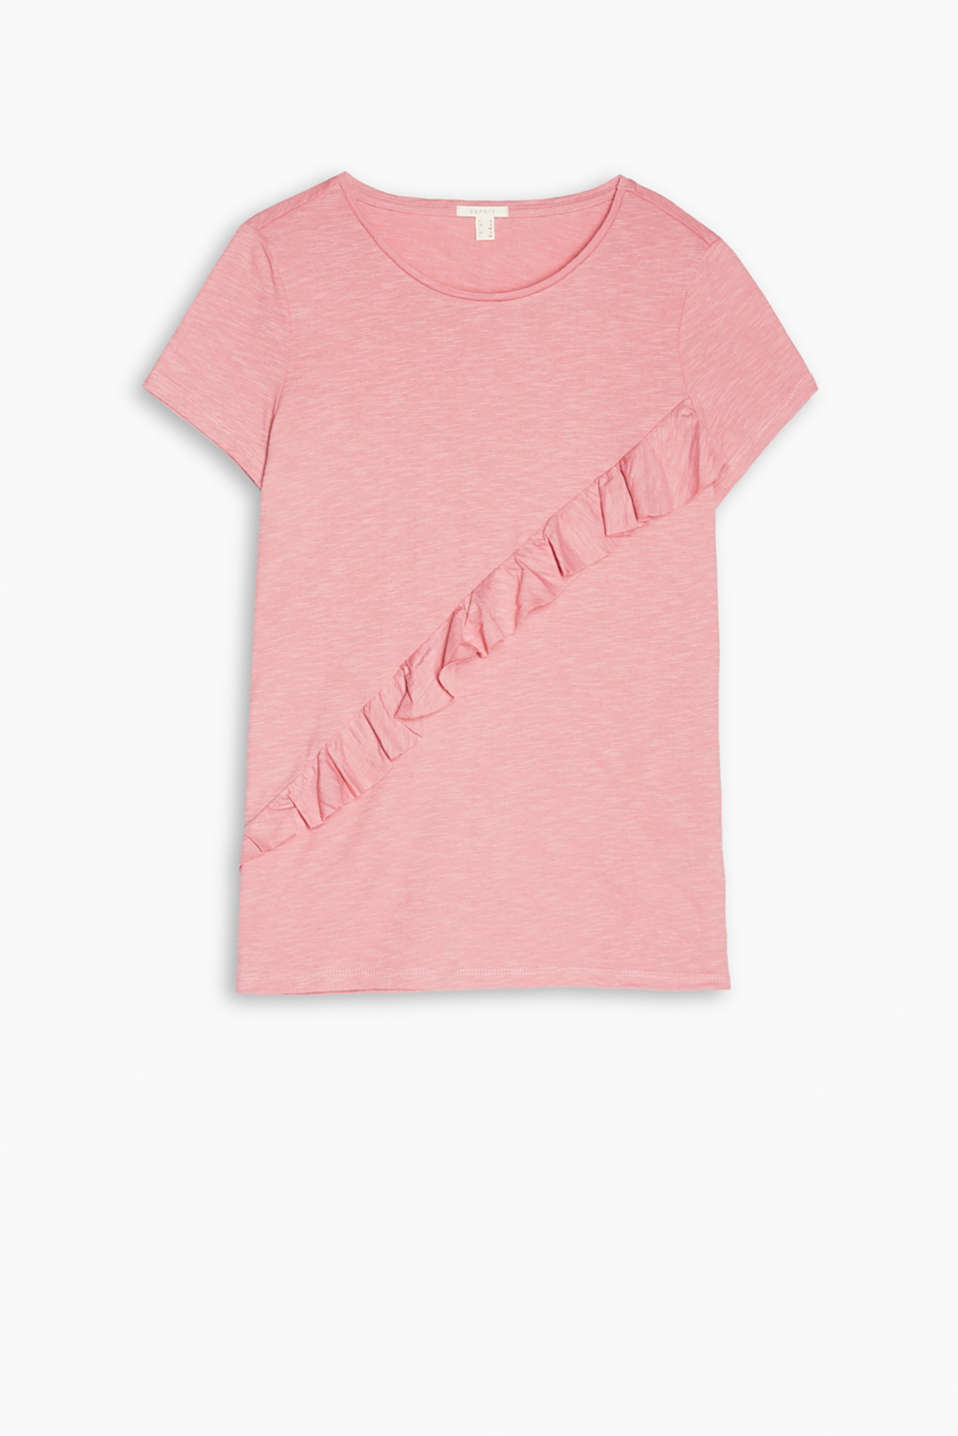 Jersey T-shirt in a soft viscose-cotton blend with a feminine frill detail and a round neckline